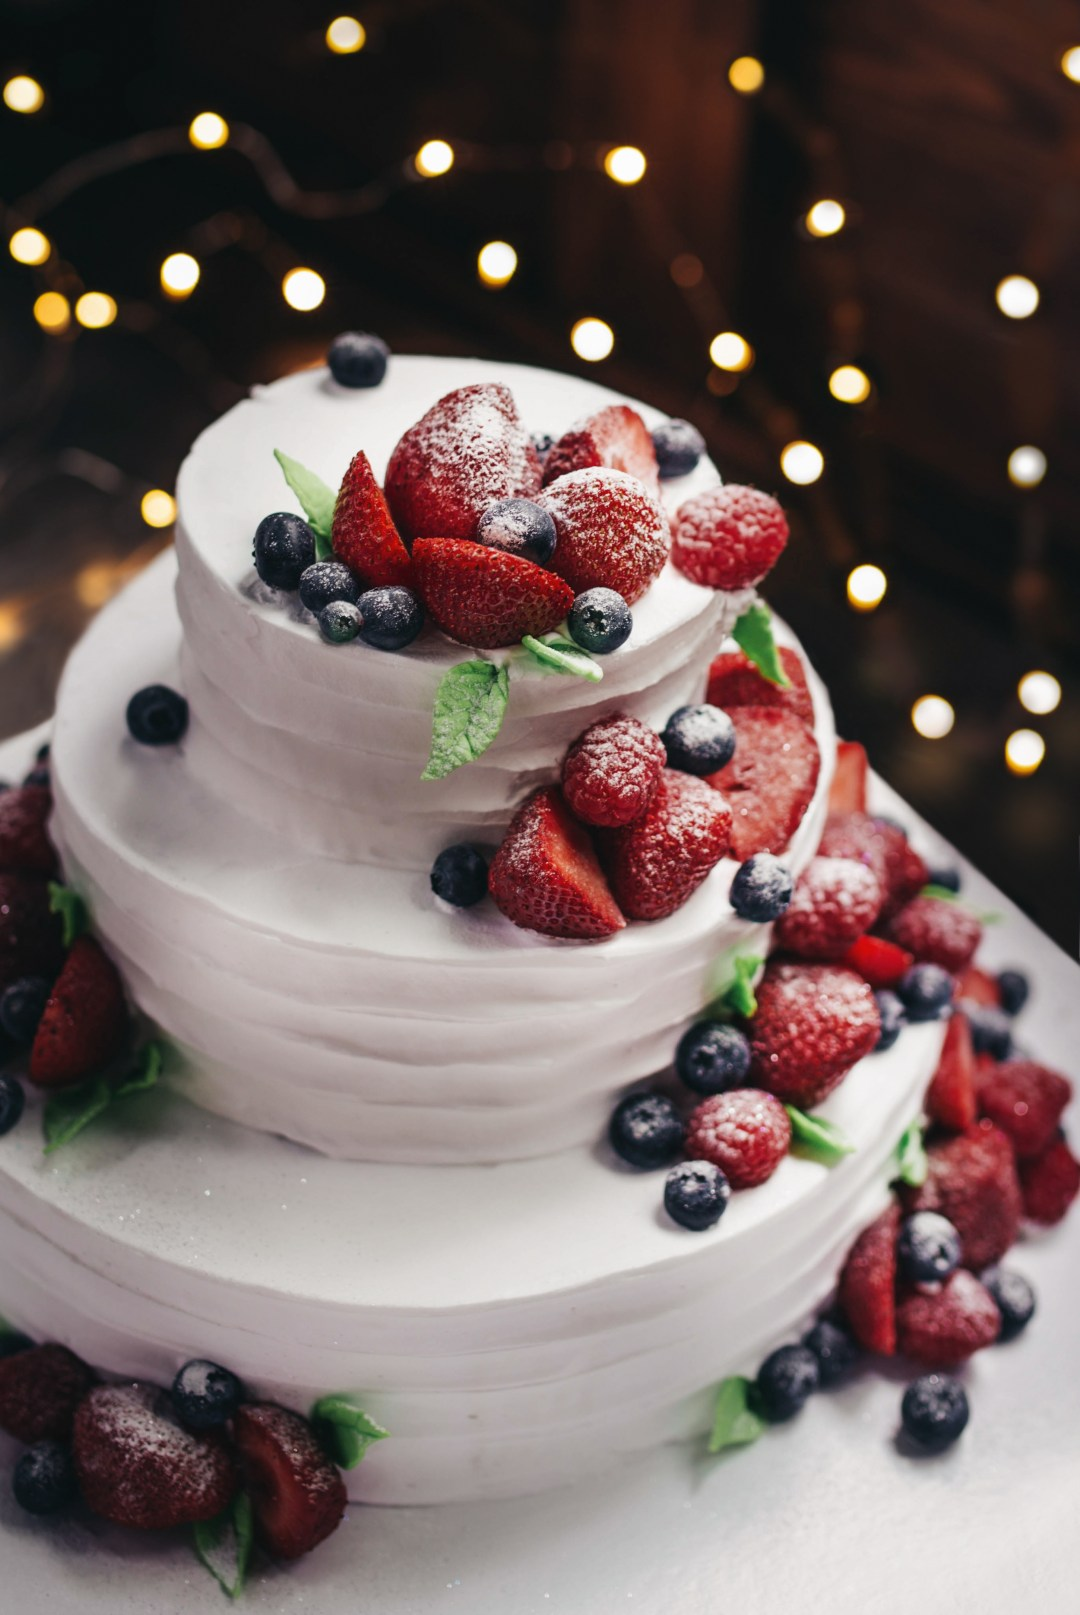 500 Cake Pictures Download Free Images On Unsplash